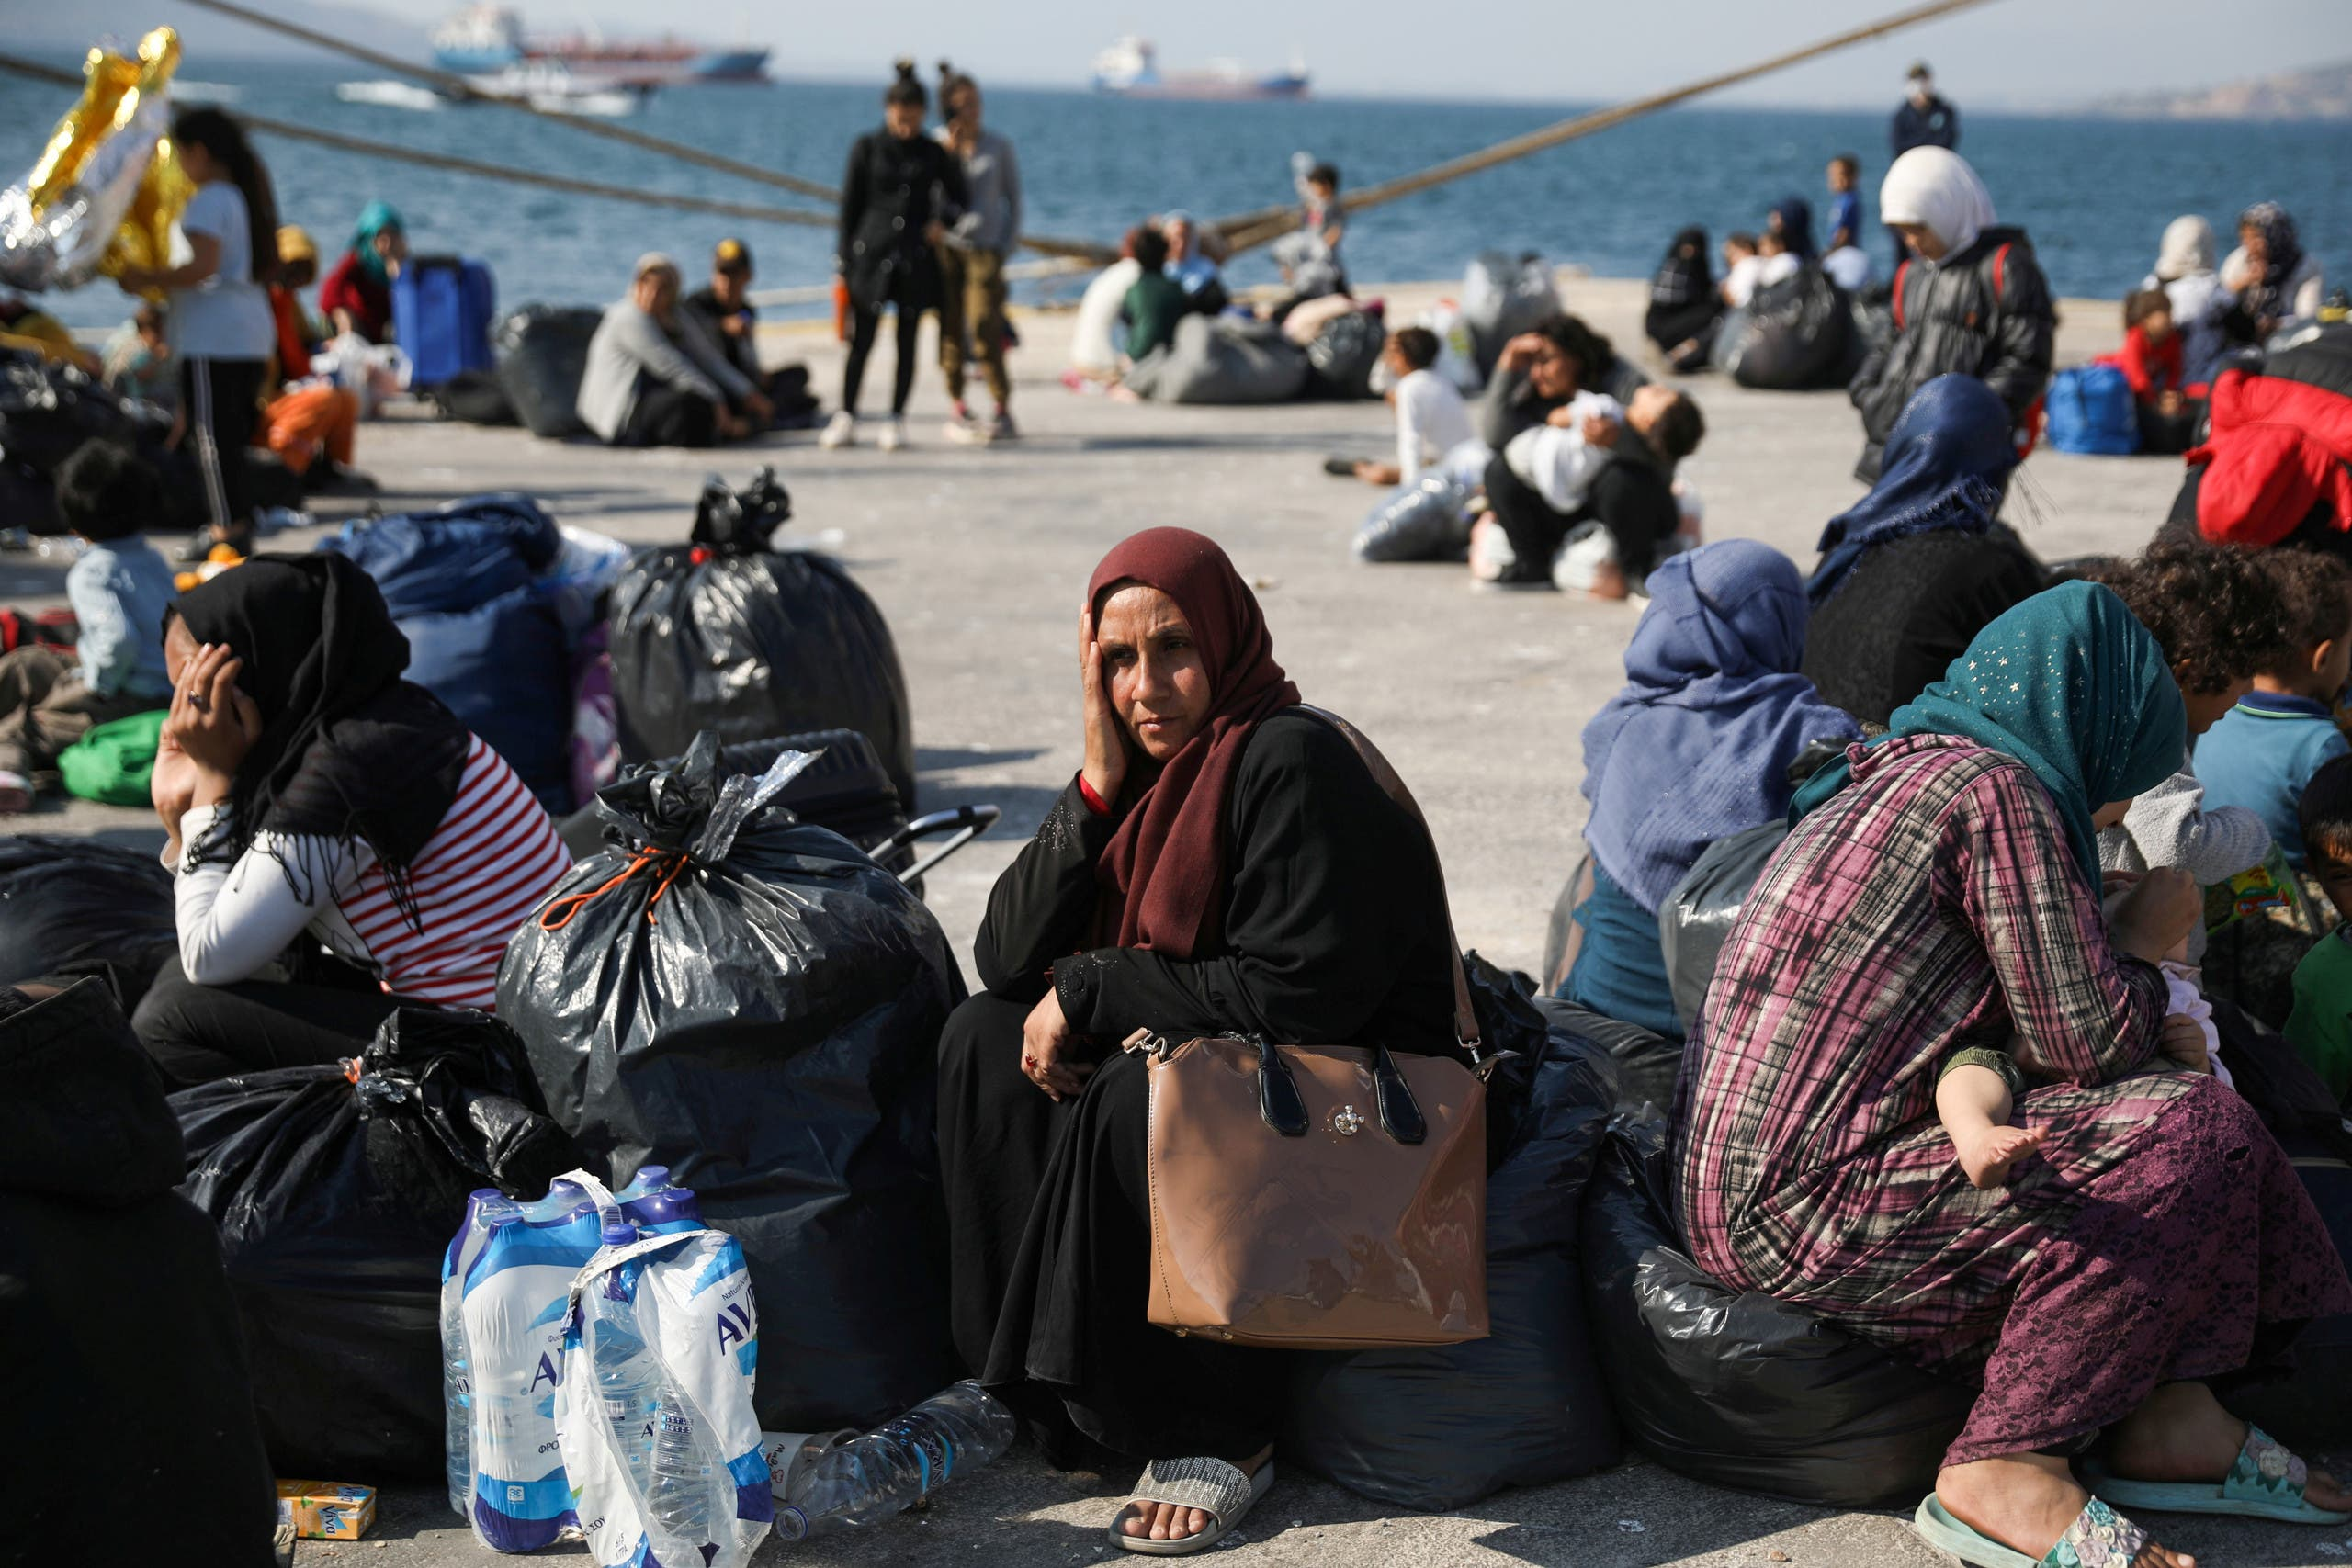 Refugees and migrants wait to be transferred to camps on the mainland, at the port of Elefsina near Athens Greece, October 22, 2019. (Reuters)